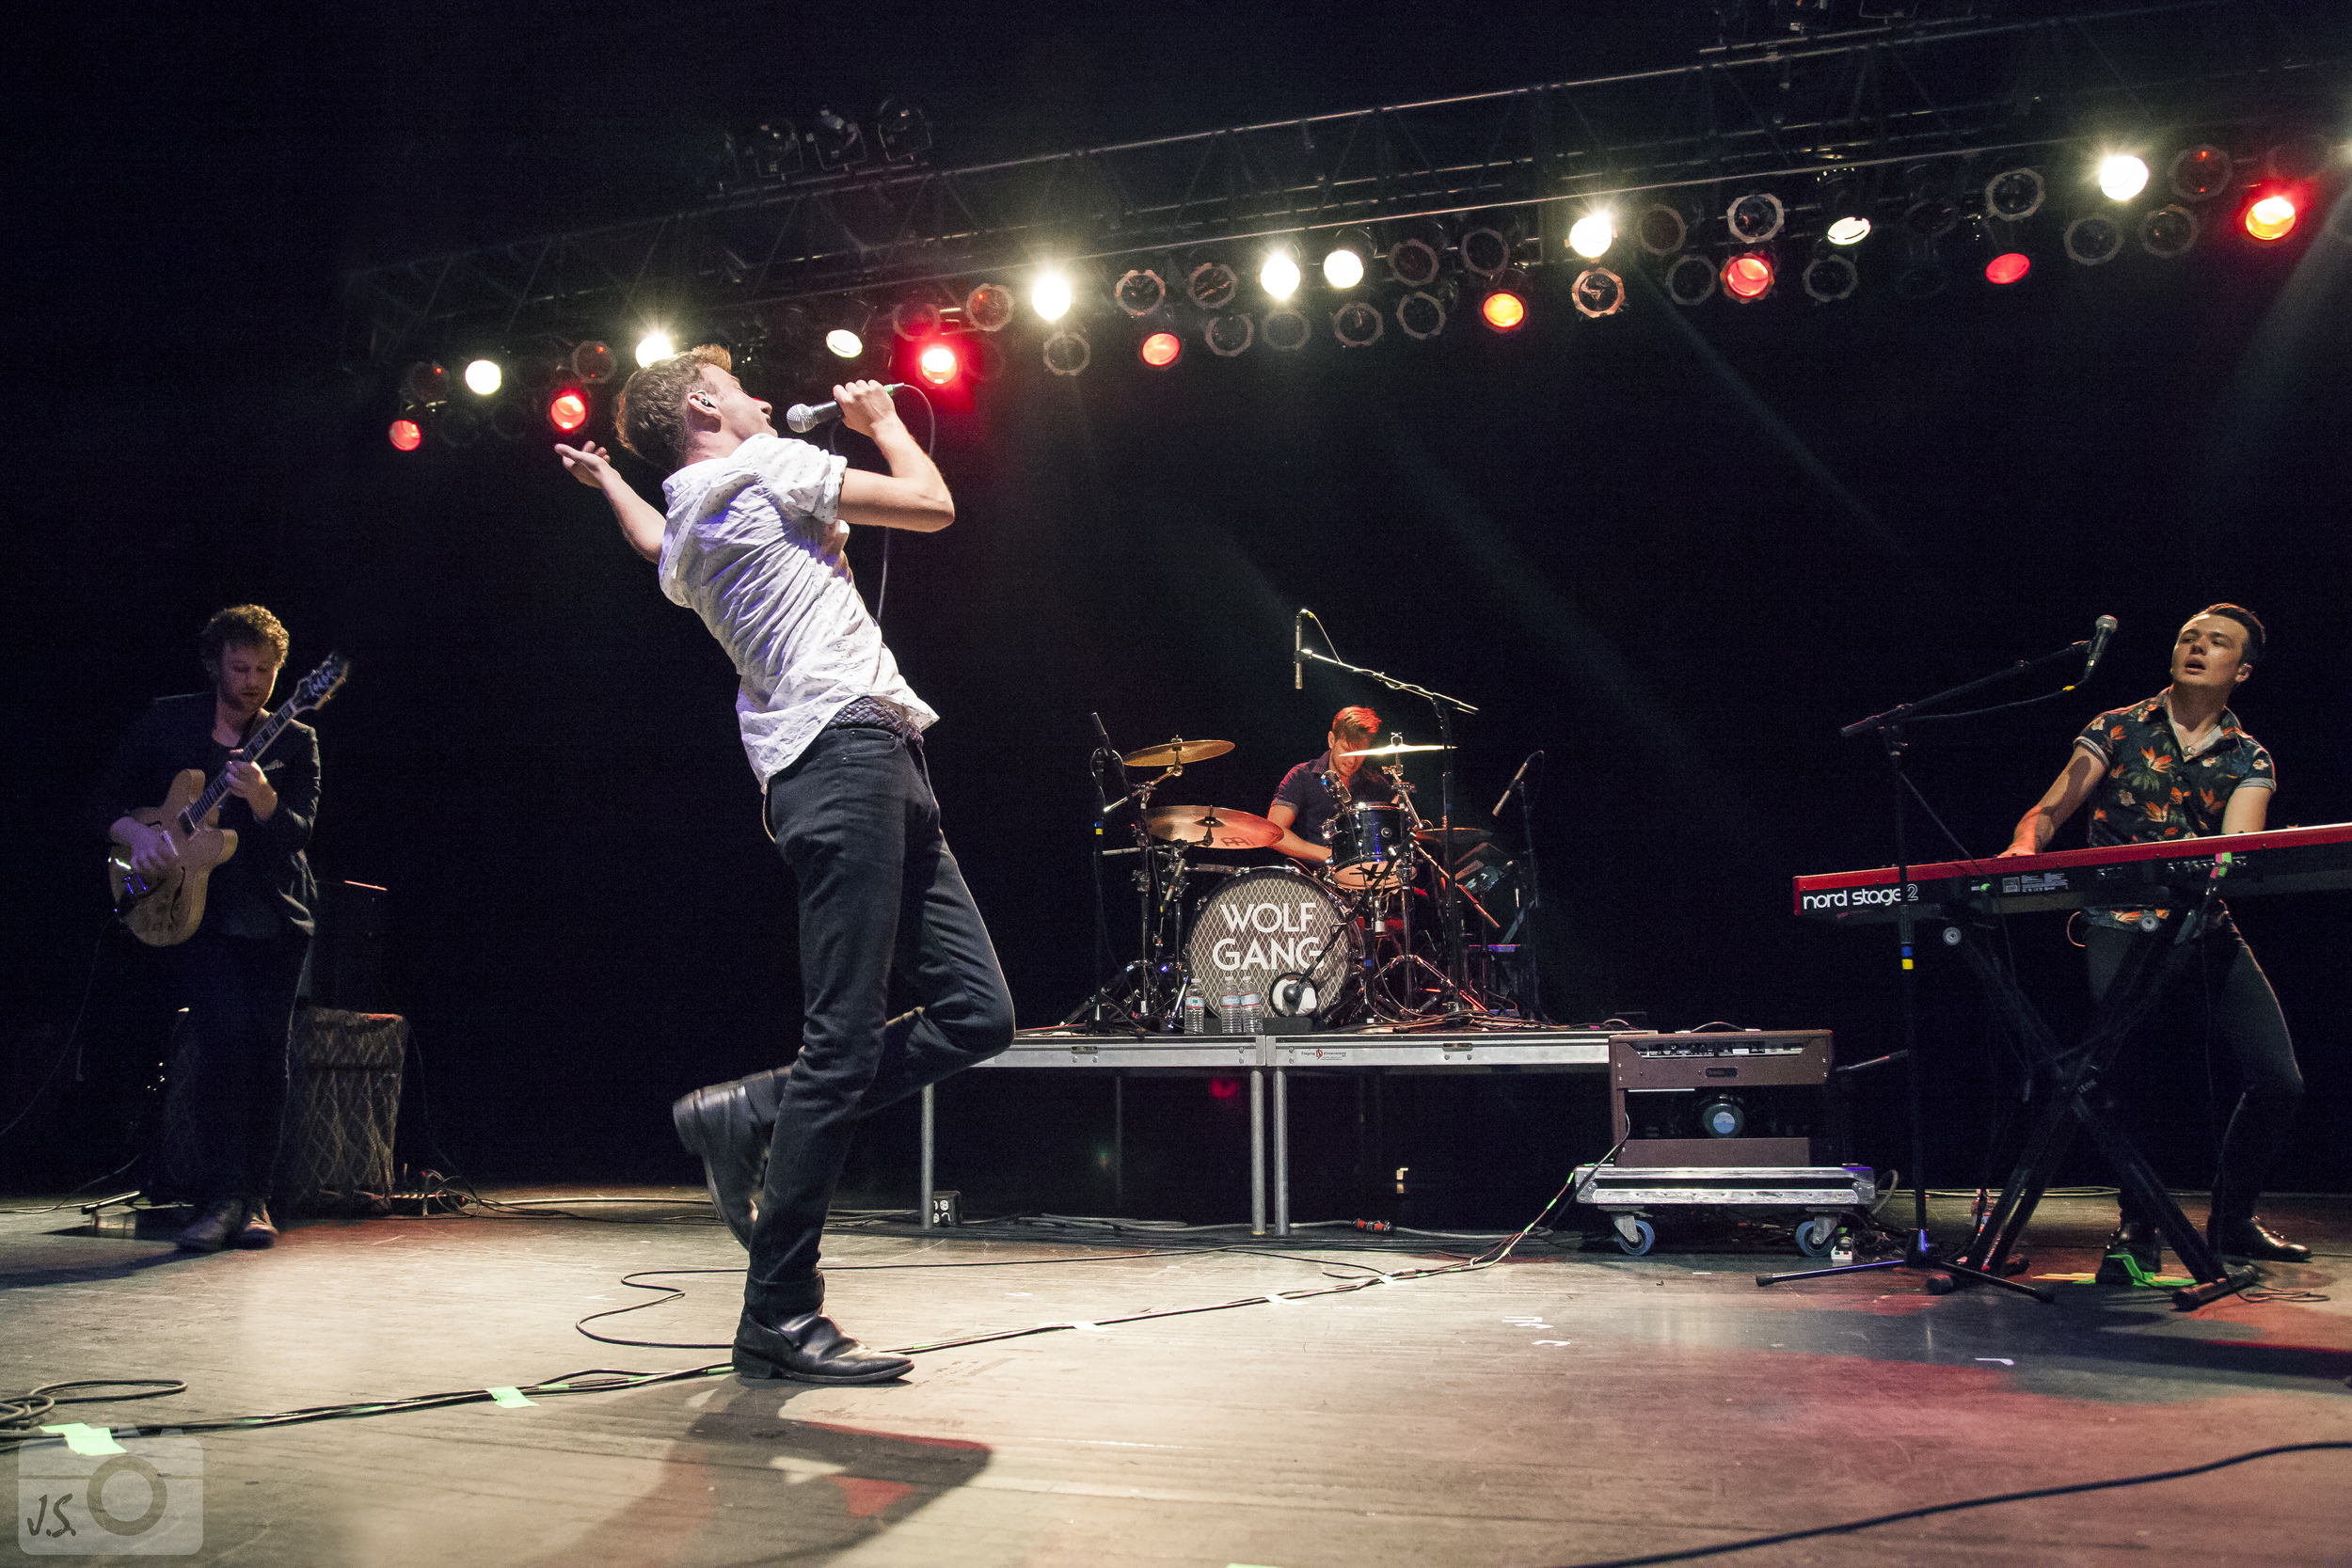 Wolf Gang returns to The National, this time as the headlining act.